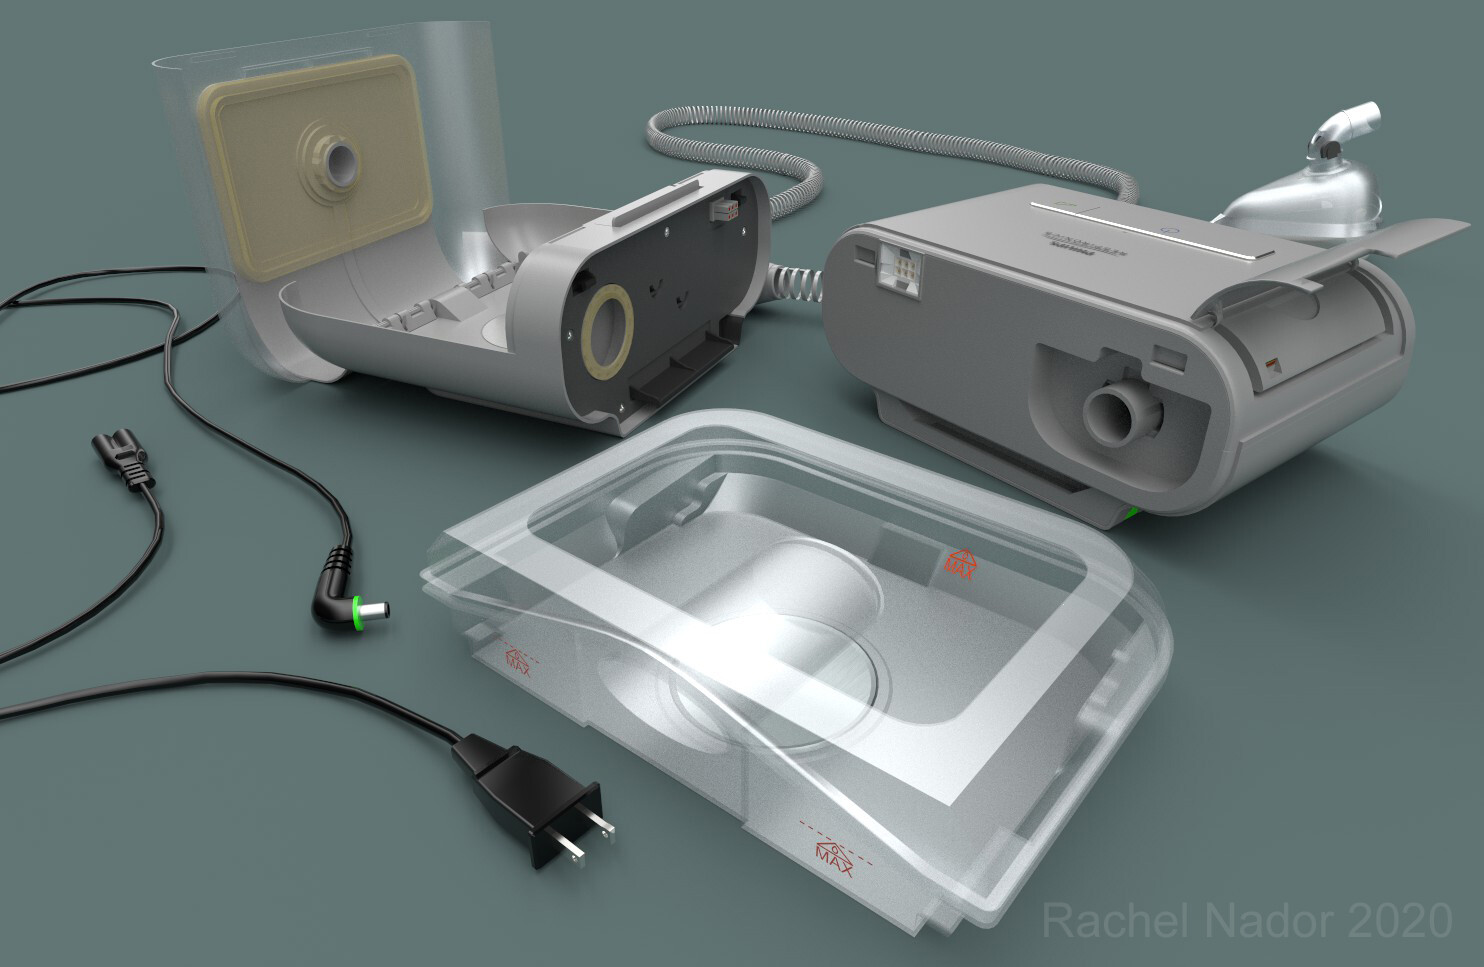 The CPAP machine, humidifier, water tank, and other components.